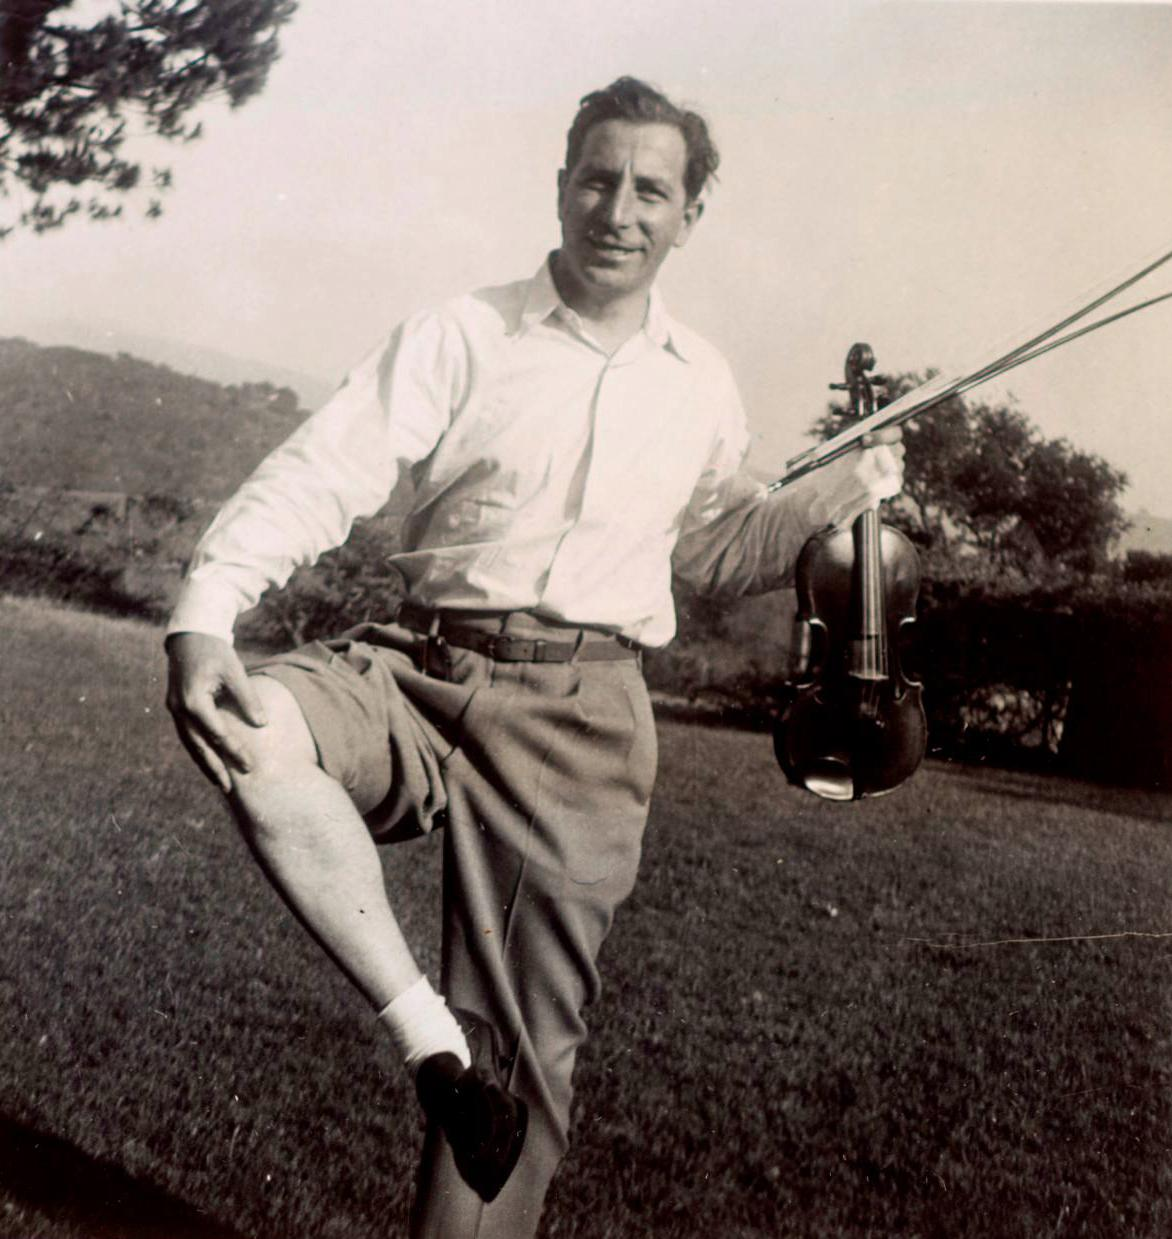 Roman Totenberg with the Stradivarius in the 1950s.